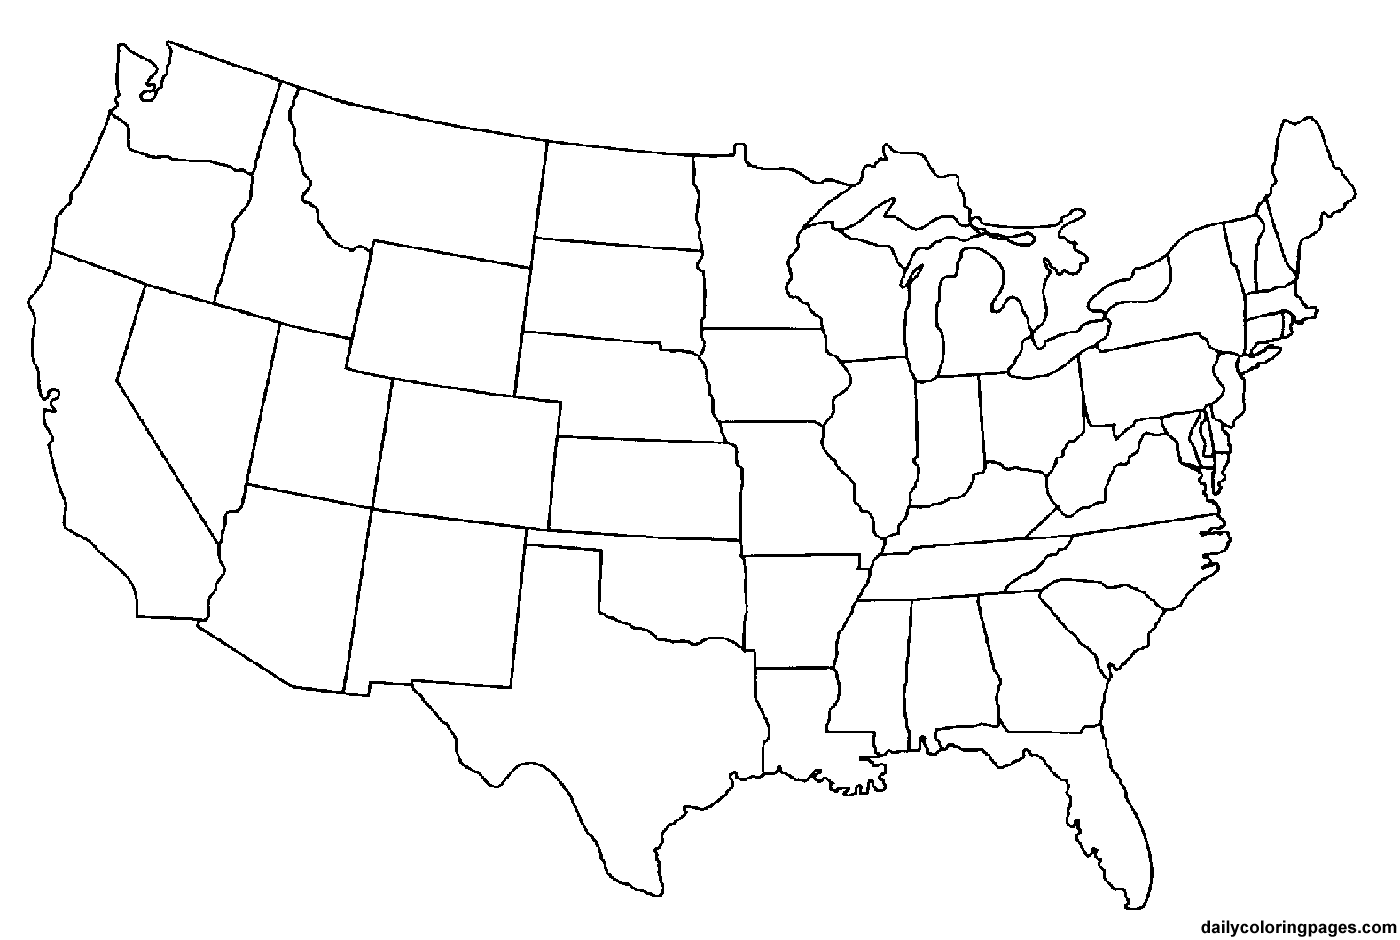 It is a graphic of Witty Printable Map of the United States of America